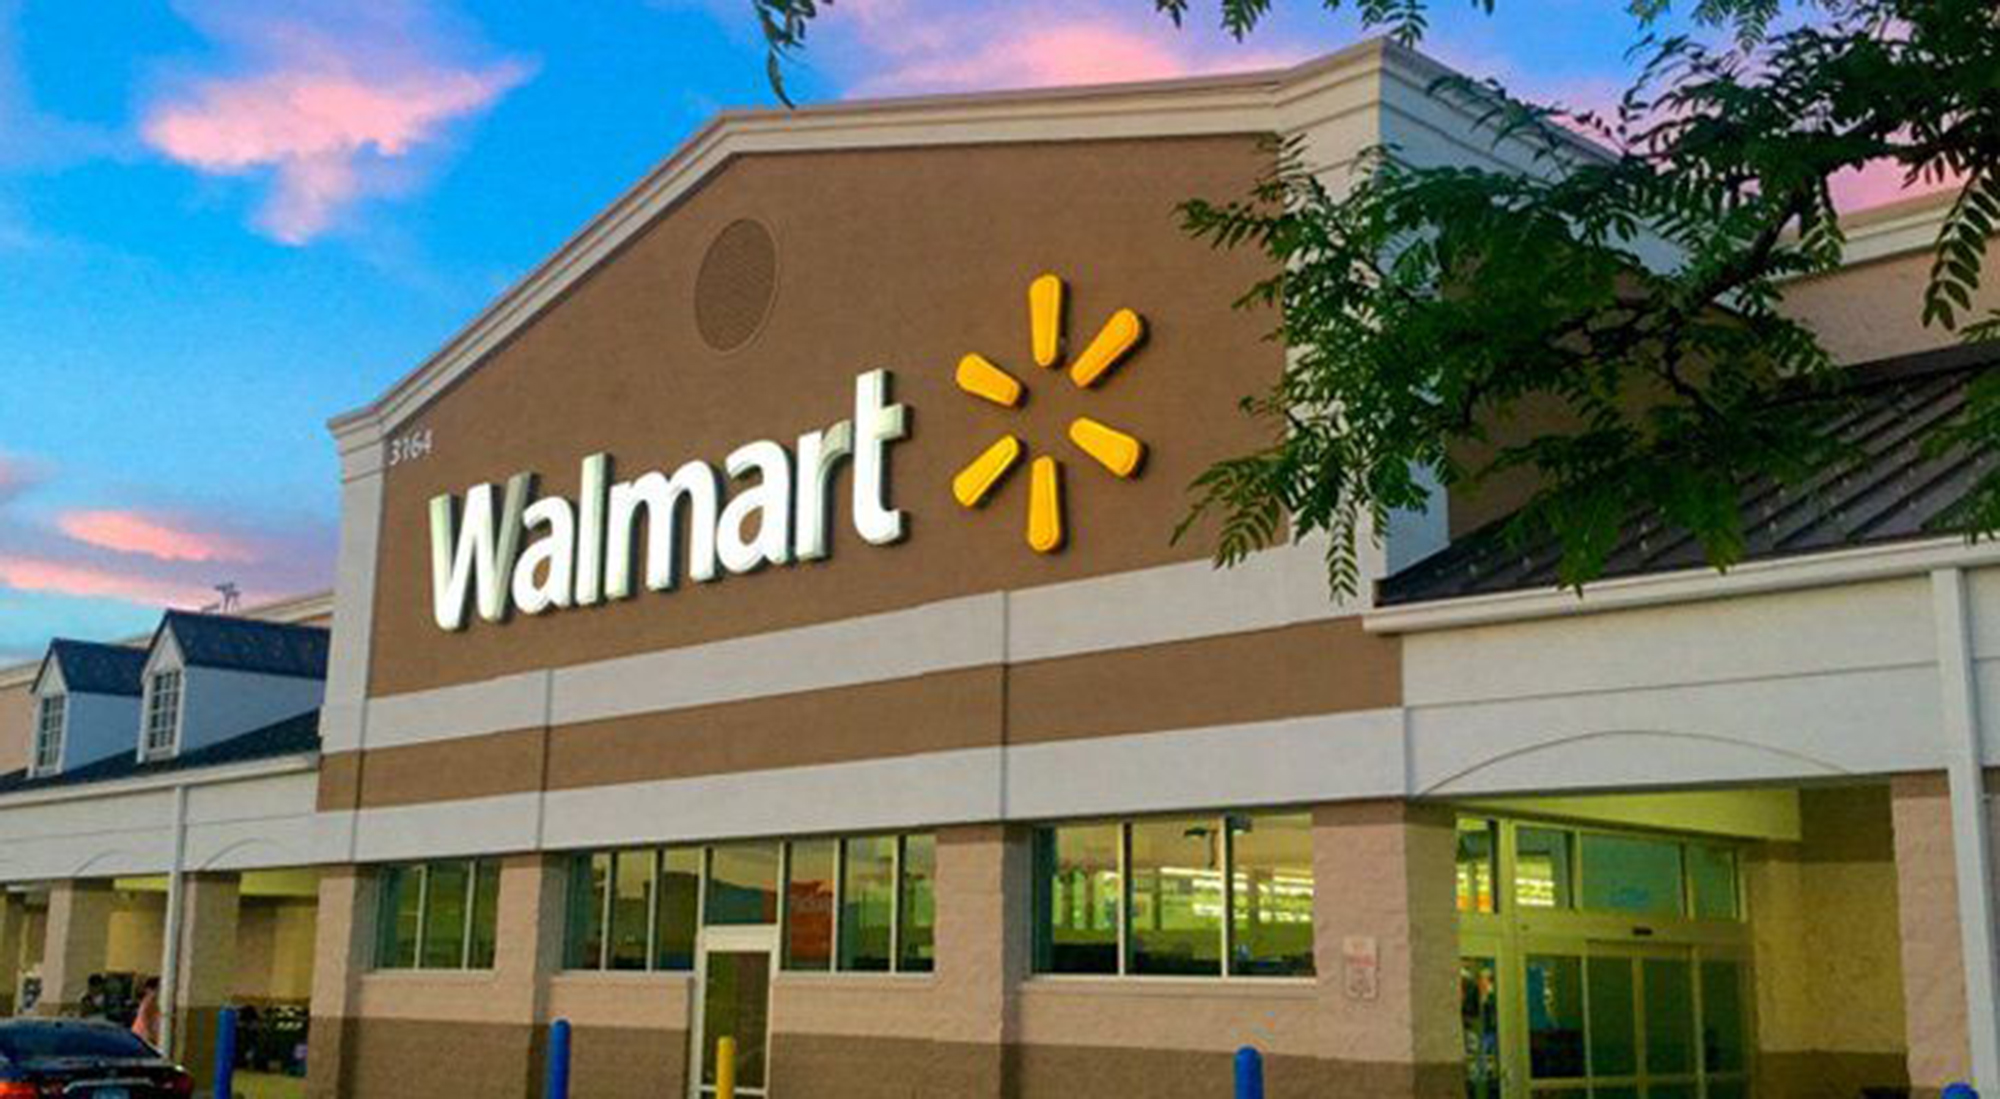 An image rendering of Walmart.